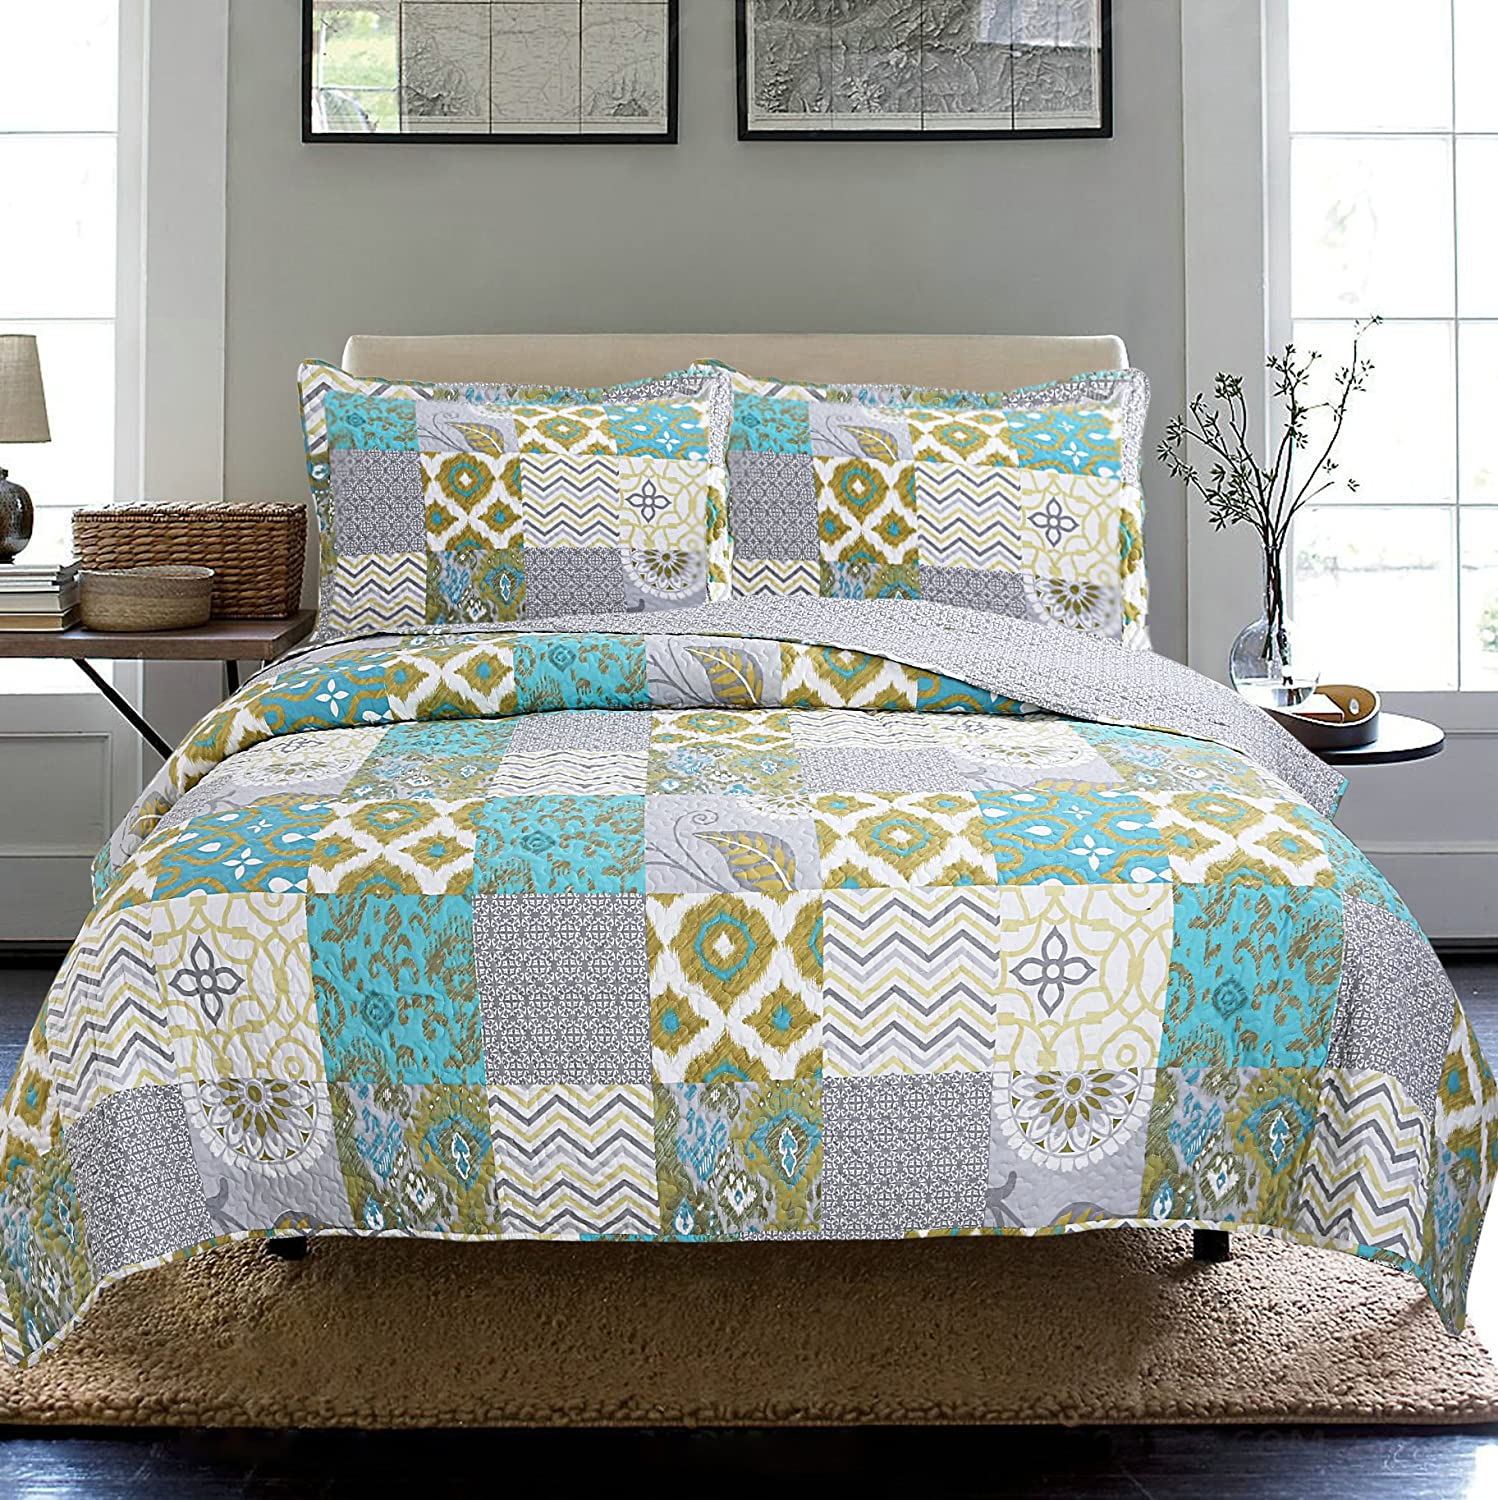 3pc Printed Modern Geometric Bedspread Coverlet